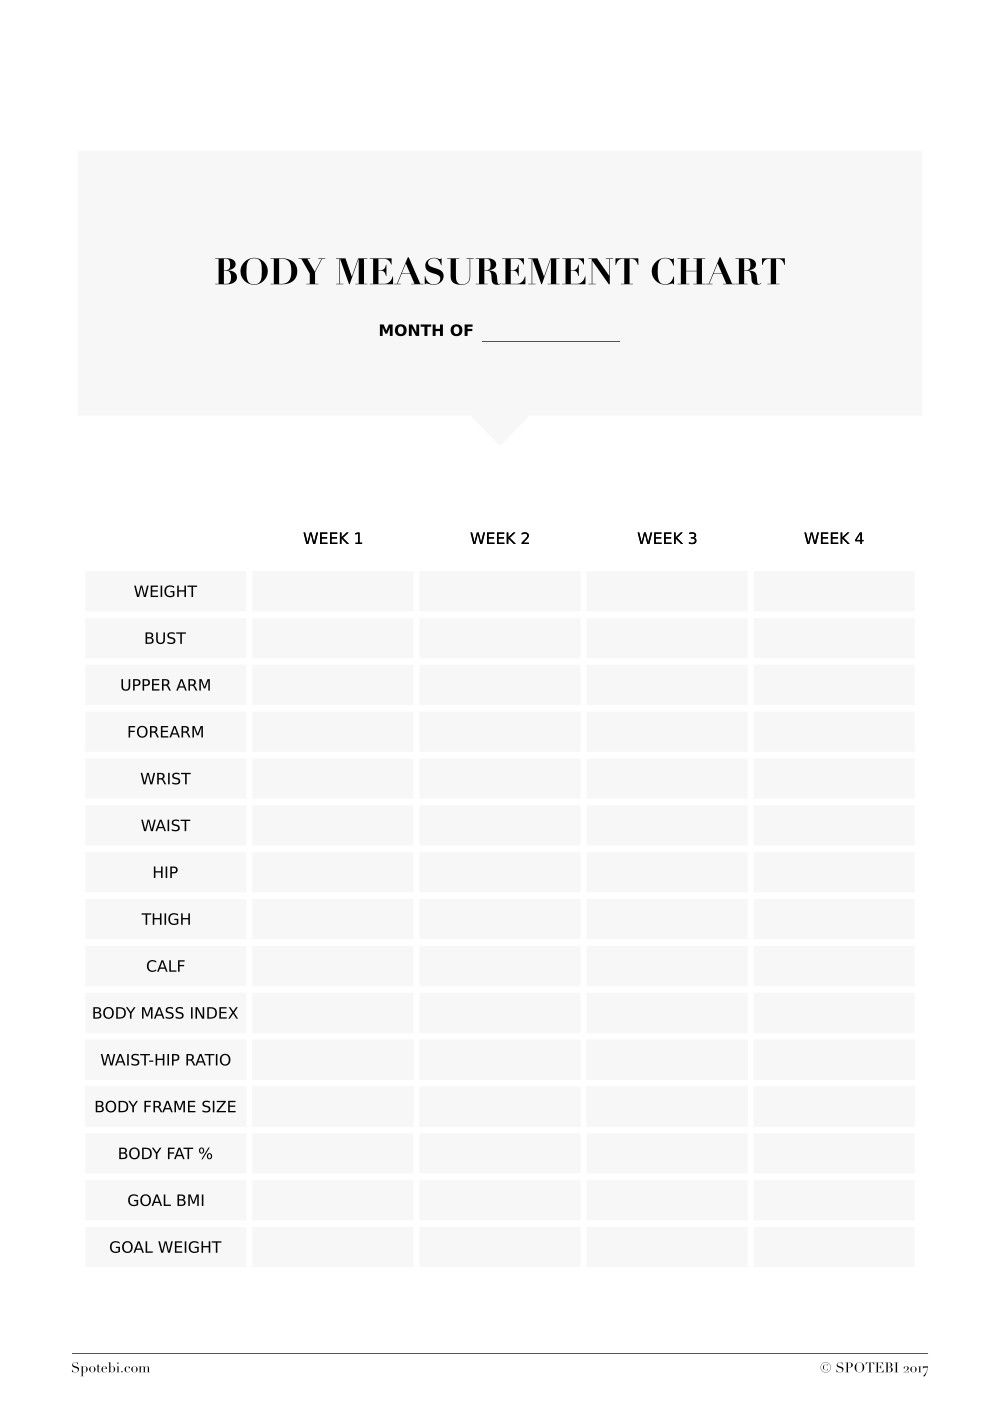 Ideal Body Weight Printable Living A Better Healthy Lifestyle